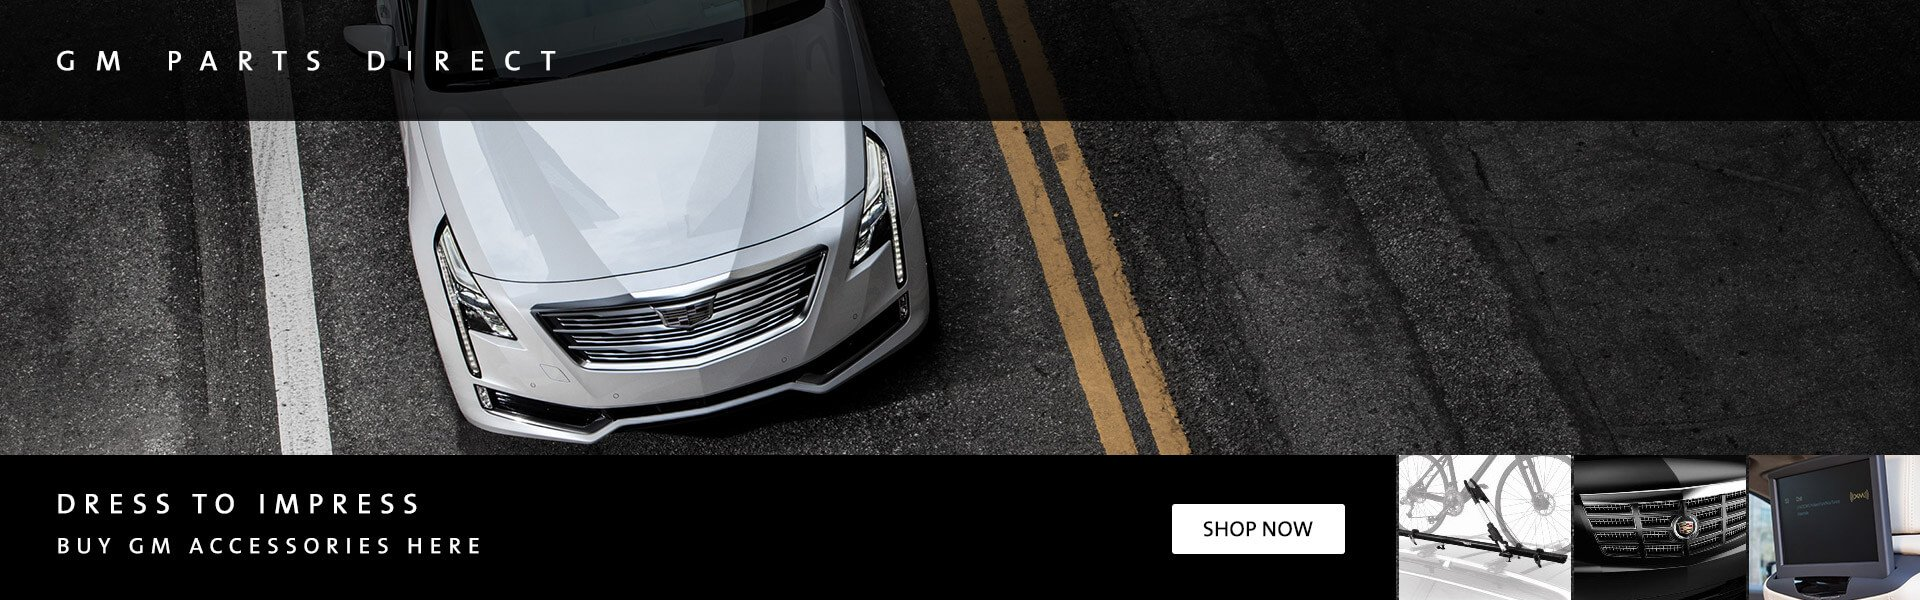 gm cadillac oem accessories